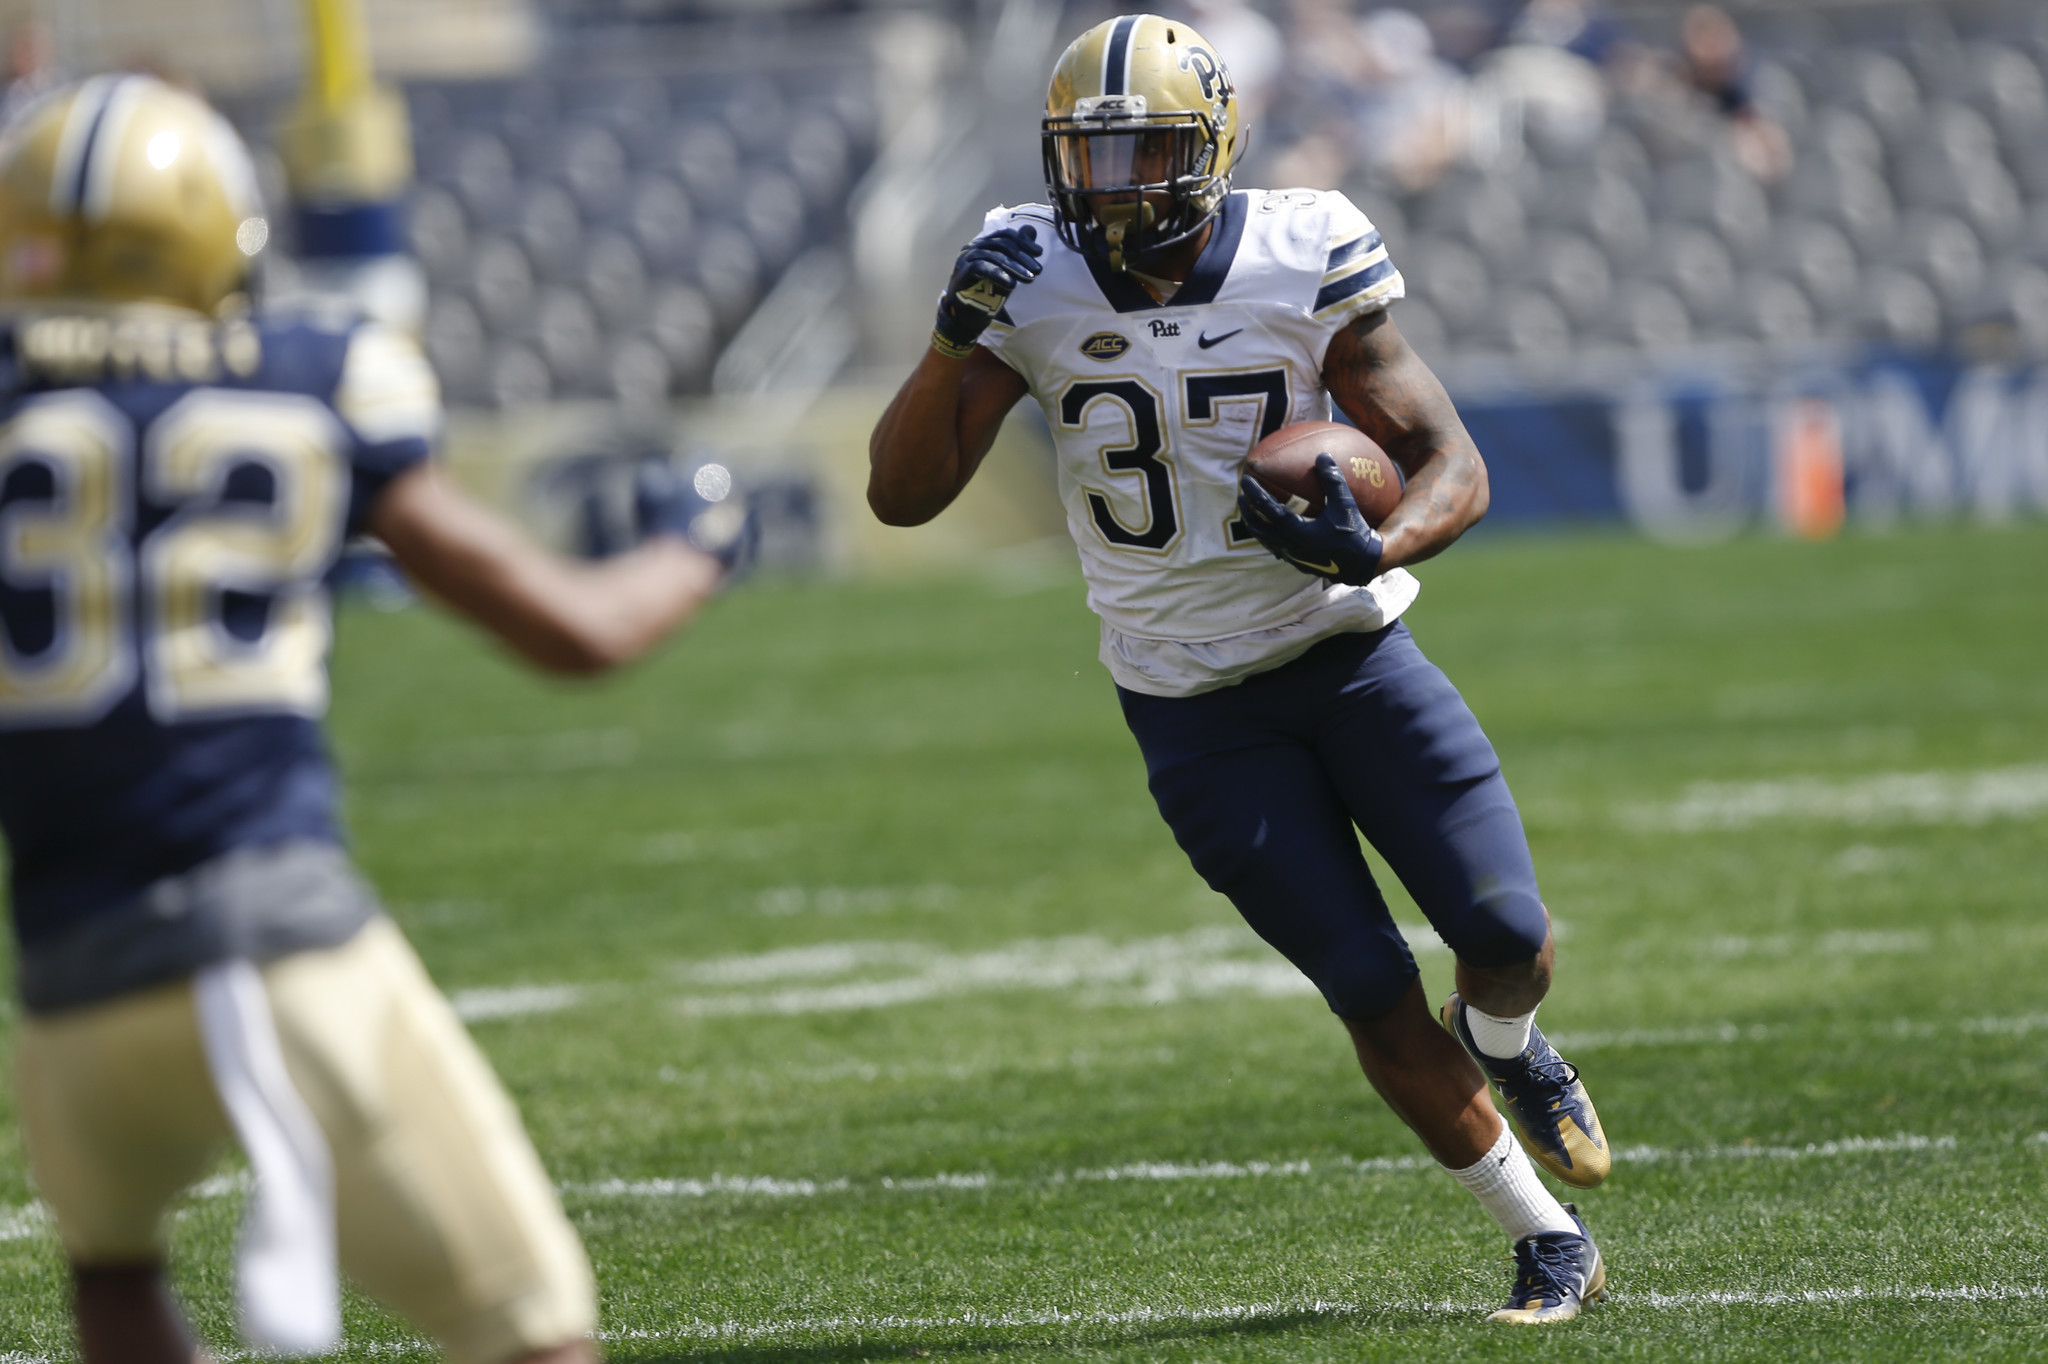 College Football Rankings: Pittsburgh Panthers